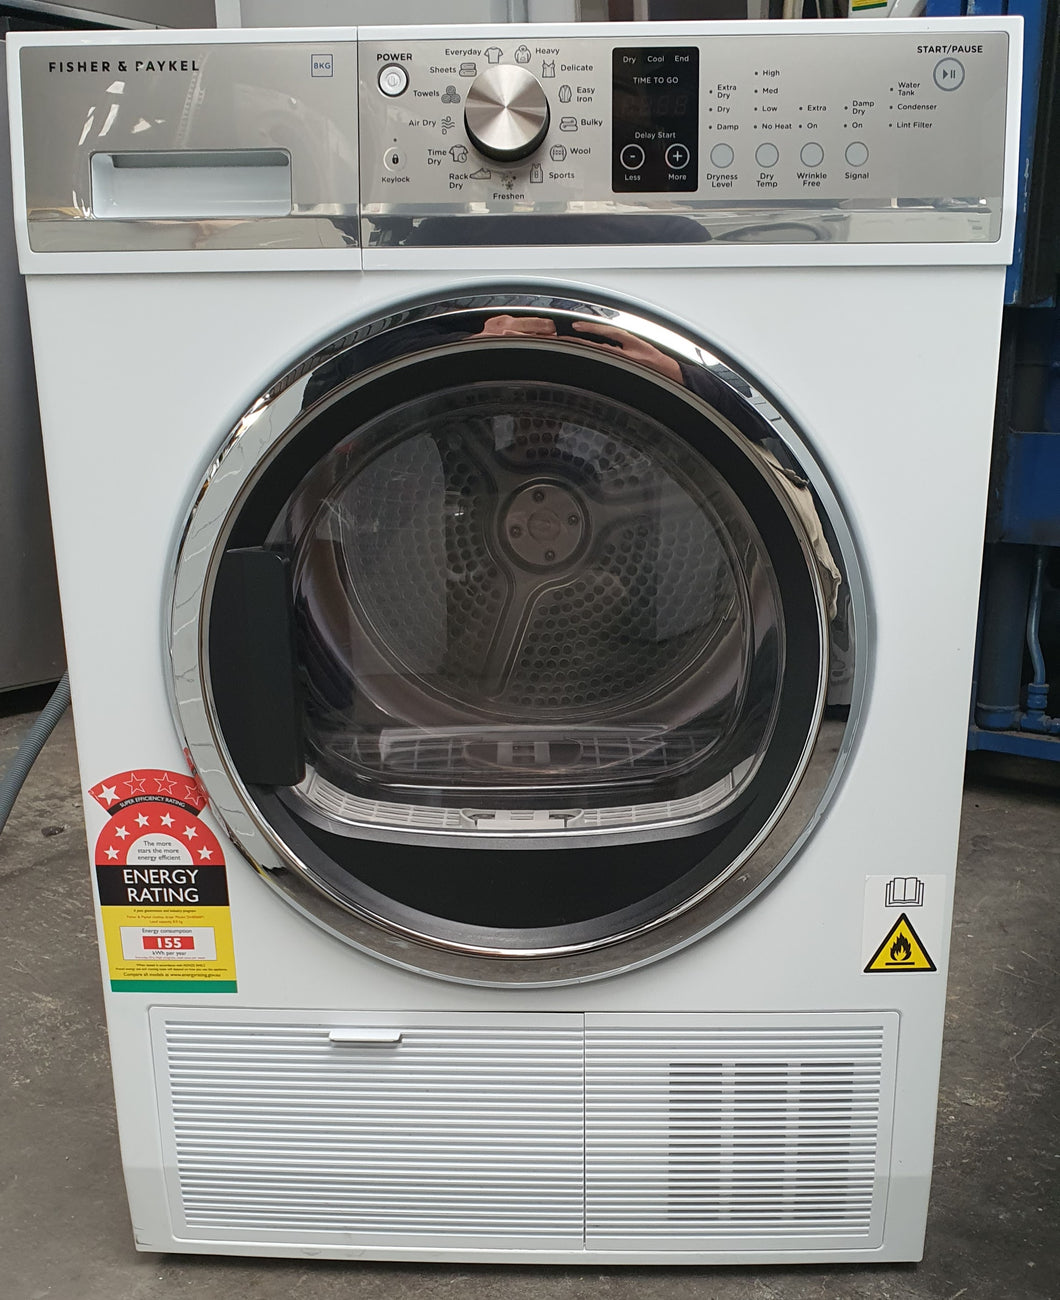 *Current Model* Fisher & Paykel 8kg Heat Pump Dryer [Factory Second]